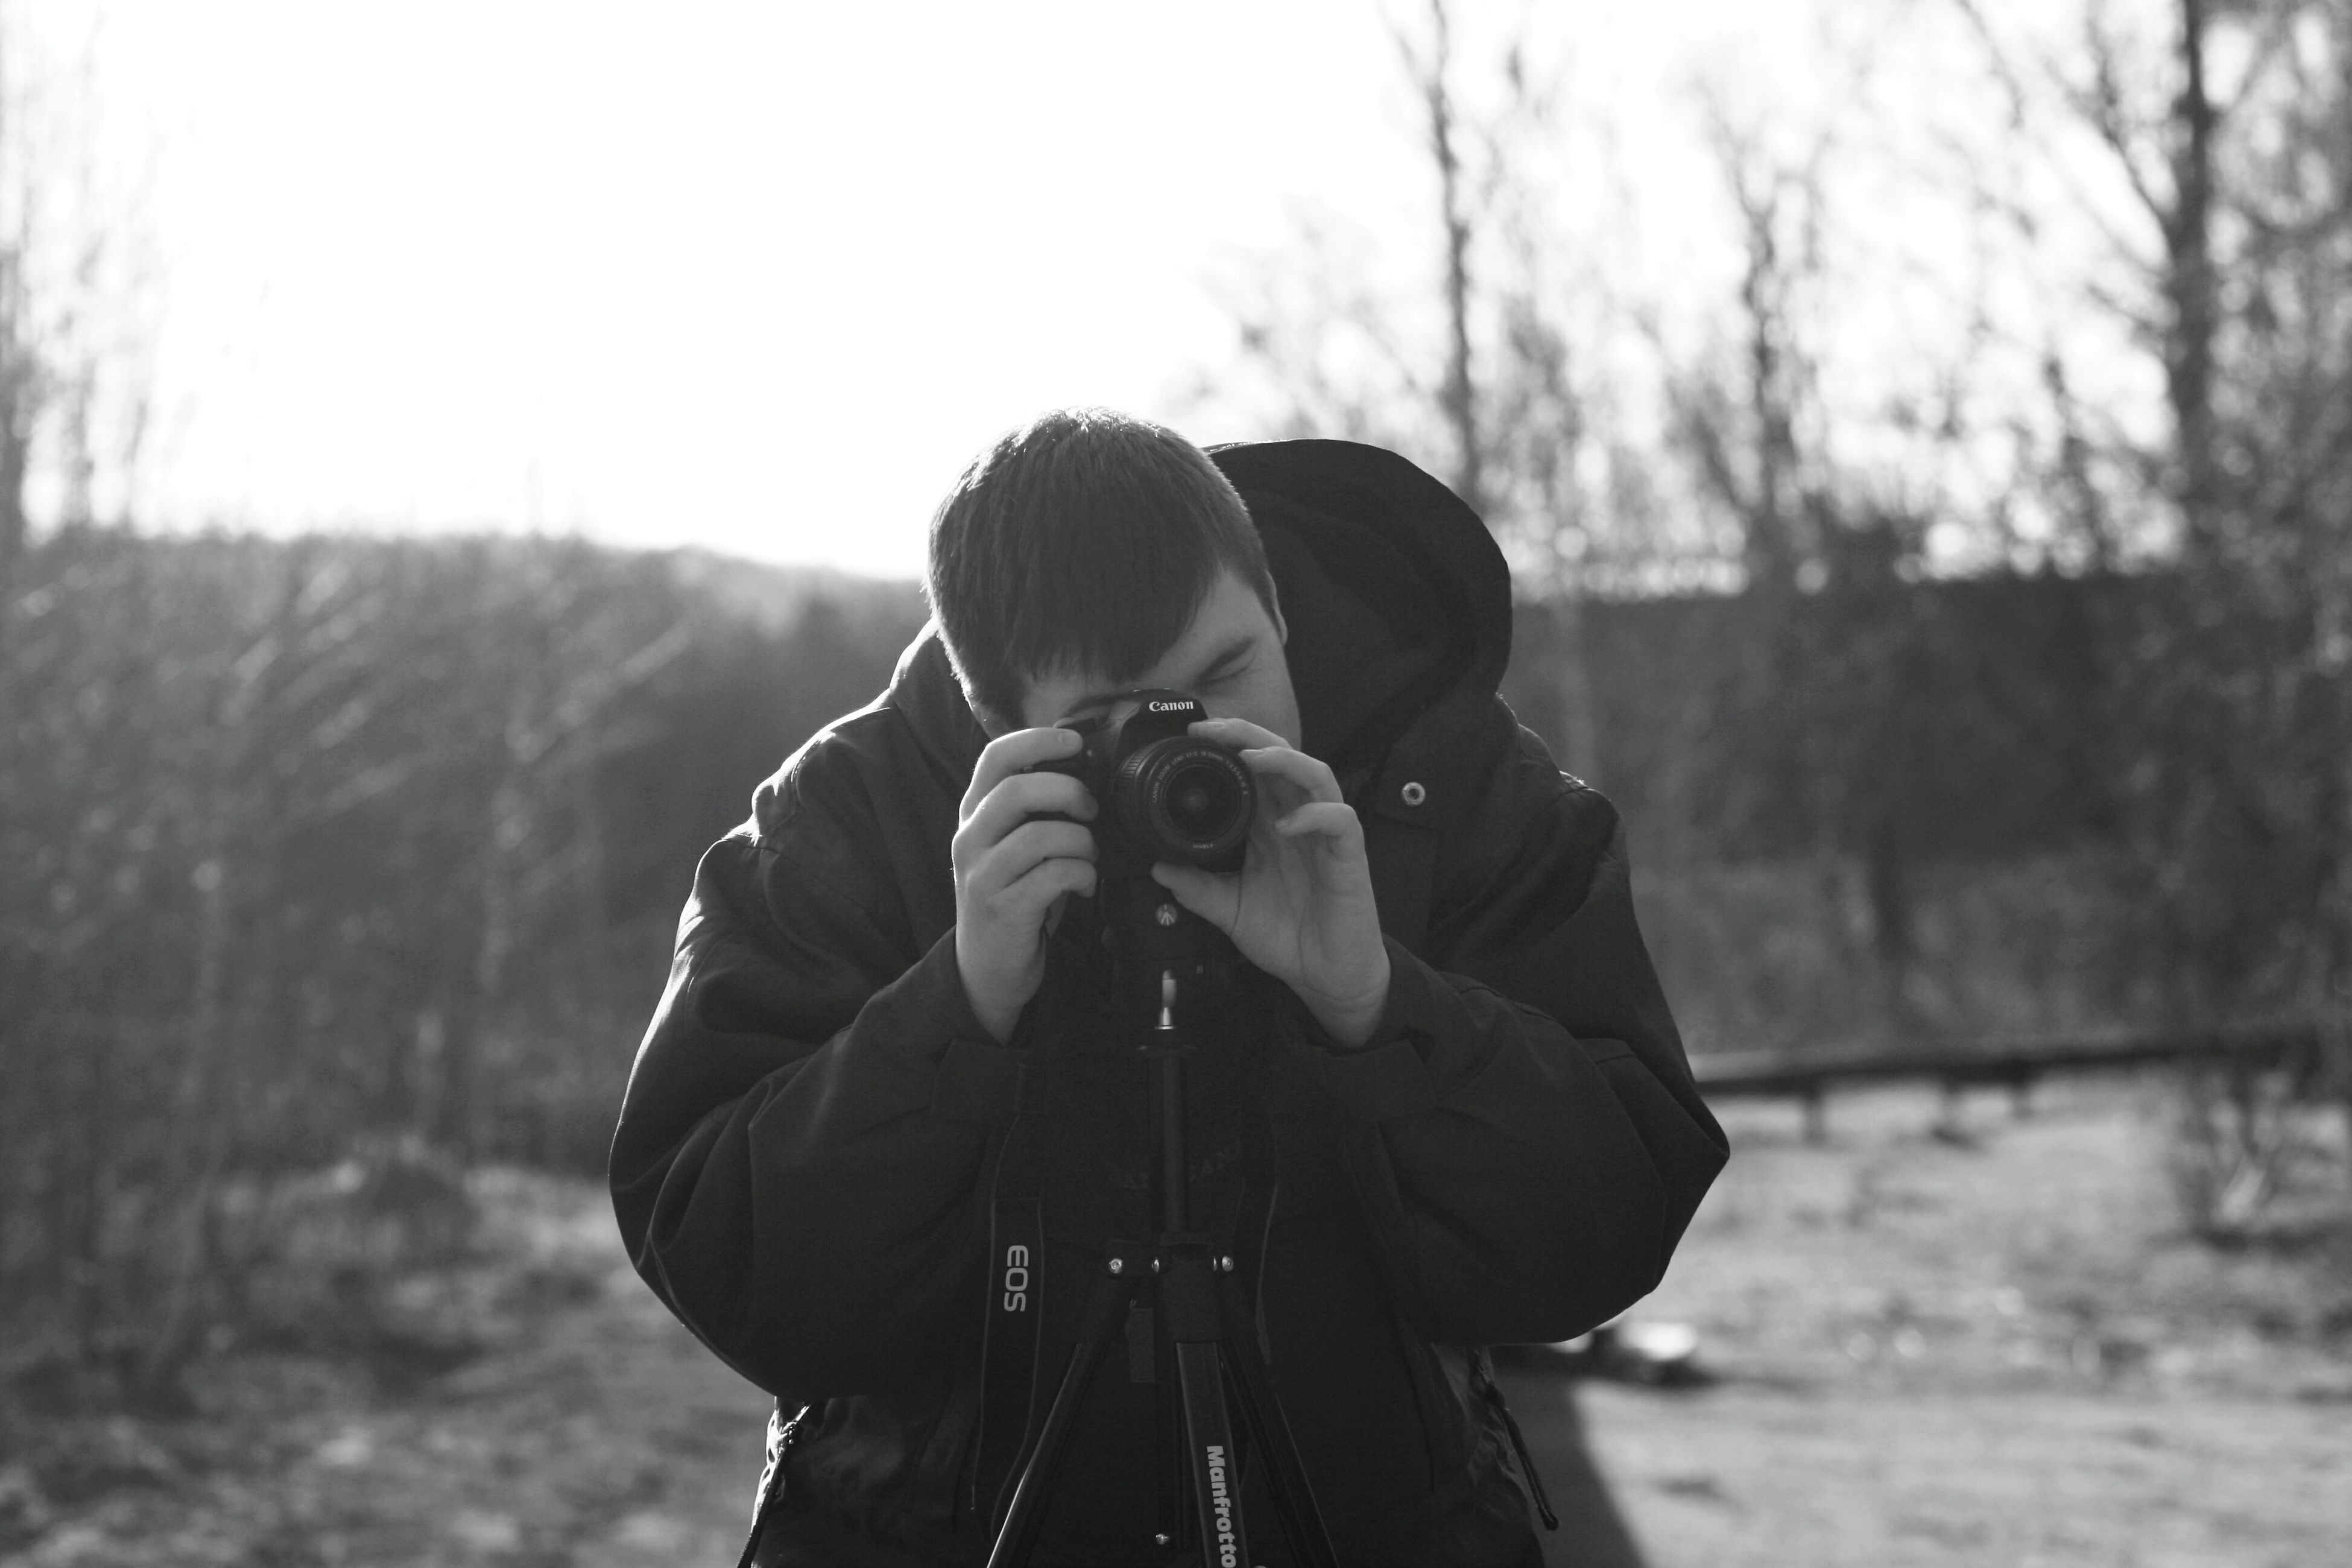 lifestyles, rear view, leisure activity, focus on foreground, men, holding, casual clothing, photographing, photography themes, standing, waist up, camera - photographic equipment, three quarter length, person, clear sky, hat, warm clothing